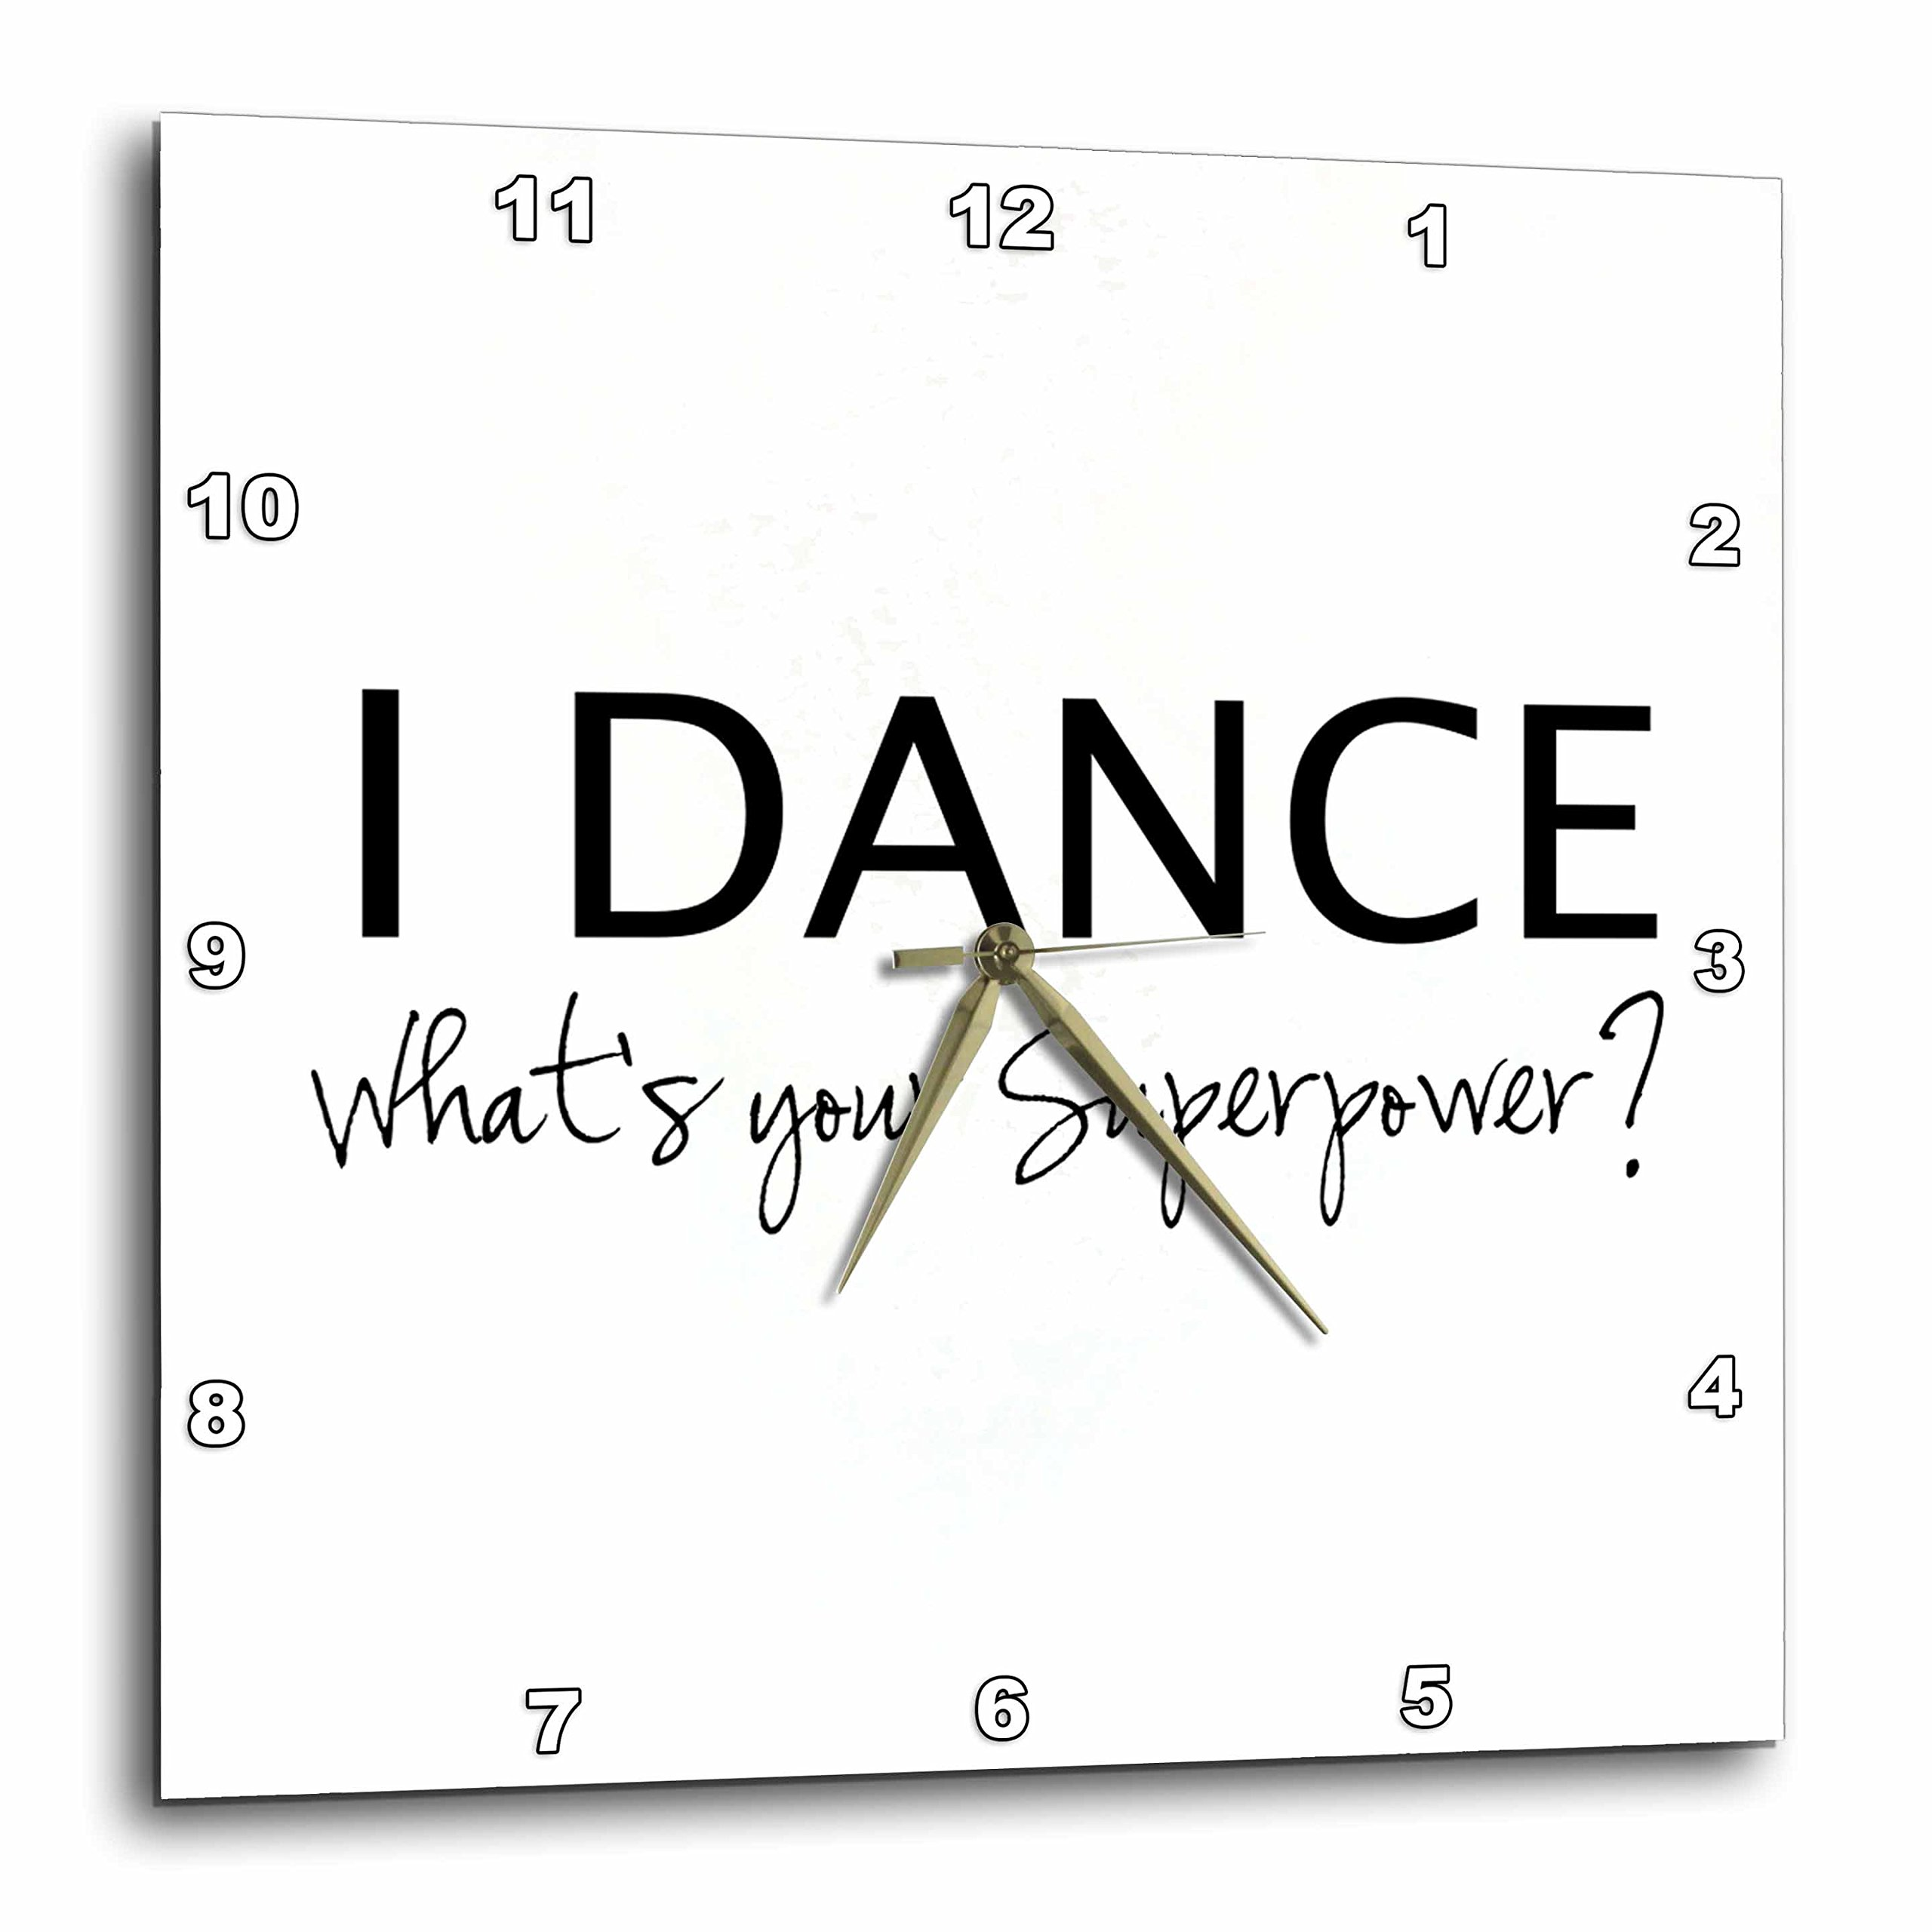 3dRose I Dance - Whats Your Superpower - Funny Dancing Love Gift for Dancers - Wall Clock, 15 by 15-Inch (dpp_184941_3)